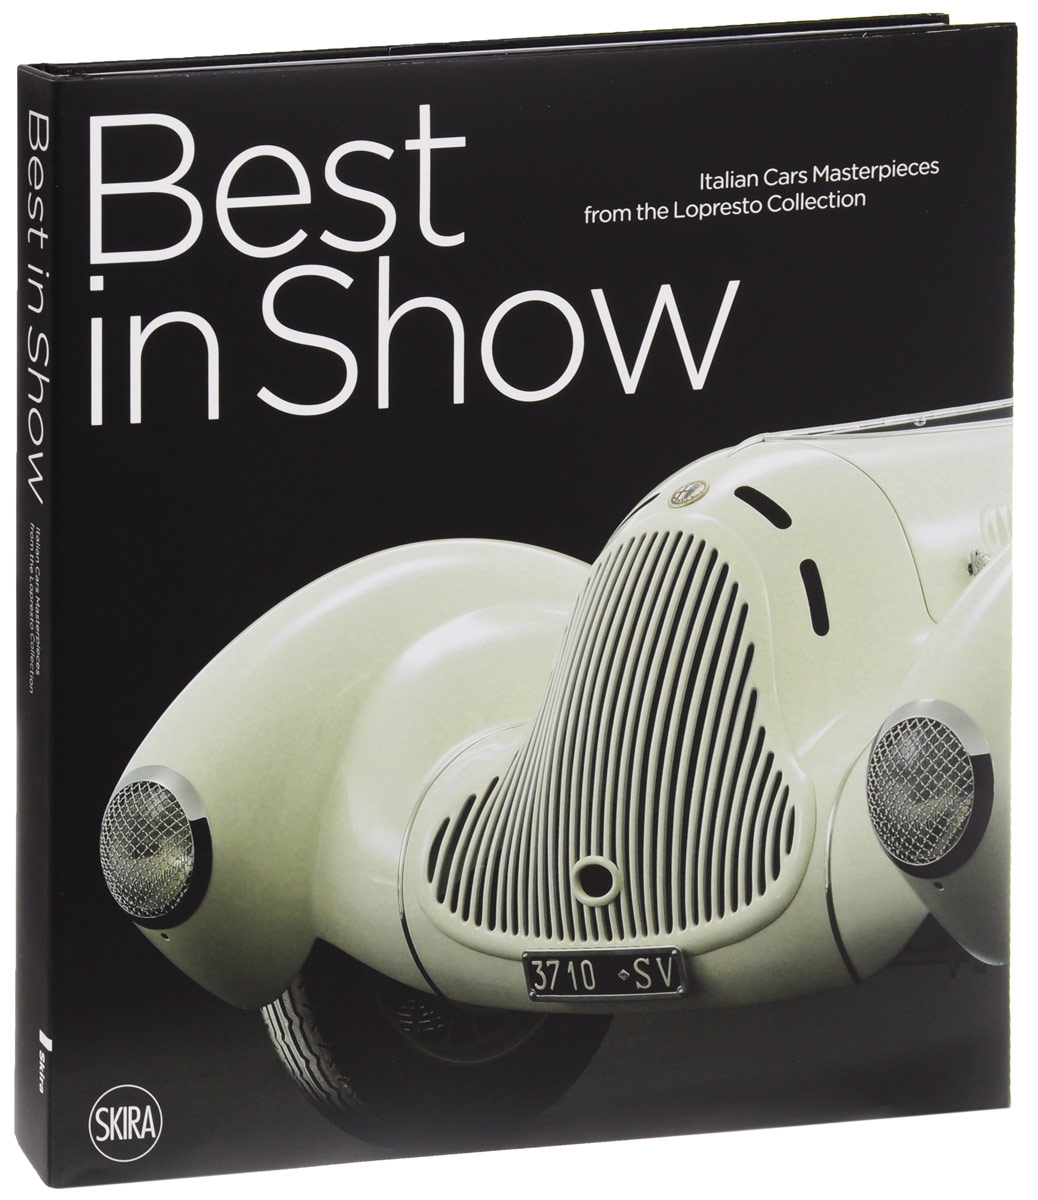 Best in Show: Italian Cars Masterpieces from the Lopresto Collection / Capolavori dell'auto italiana dalla collezione Lopresto